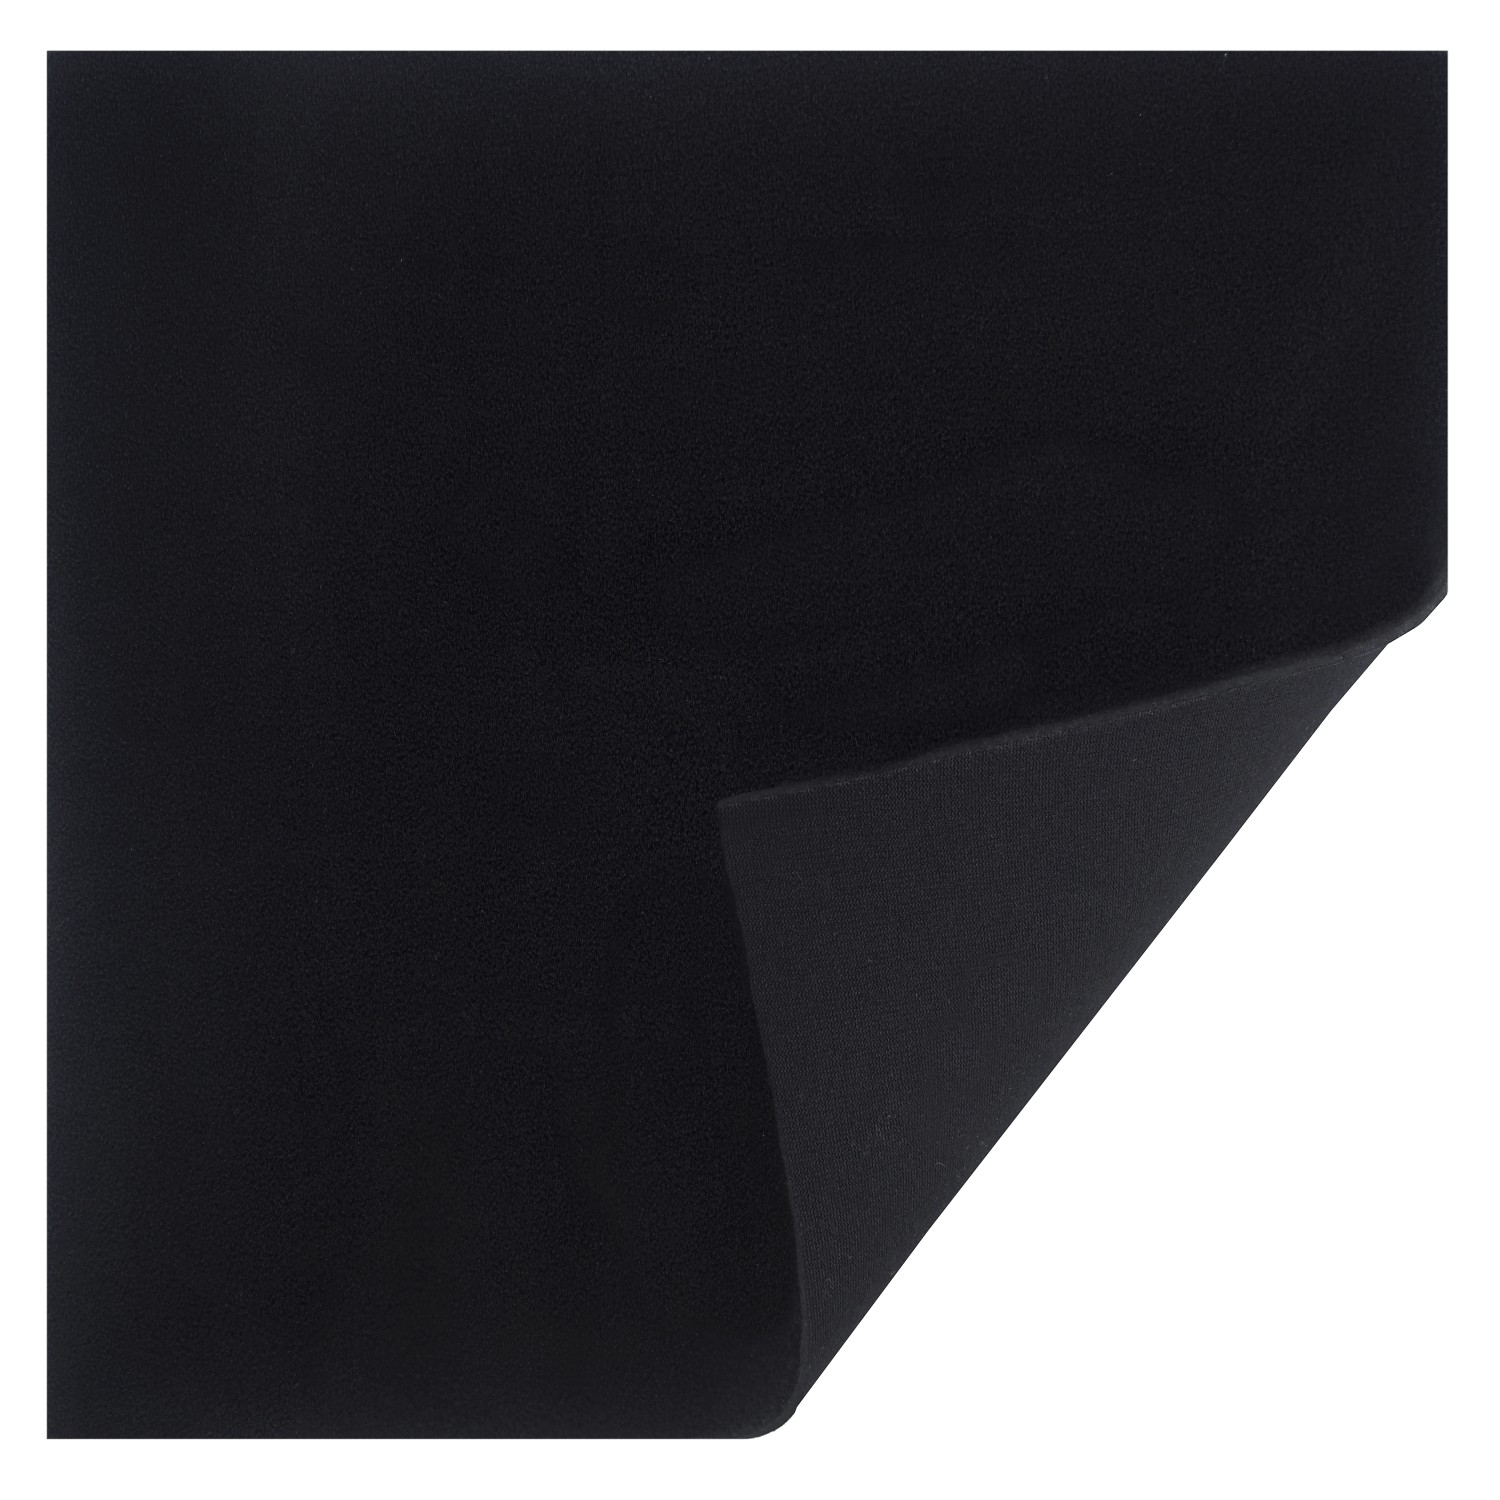 Small Neoprene Sheets 3Mm Double Lined 230Mm X 300Mm -1986